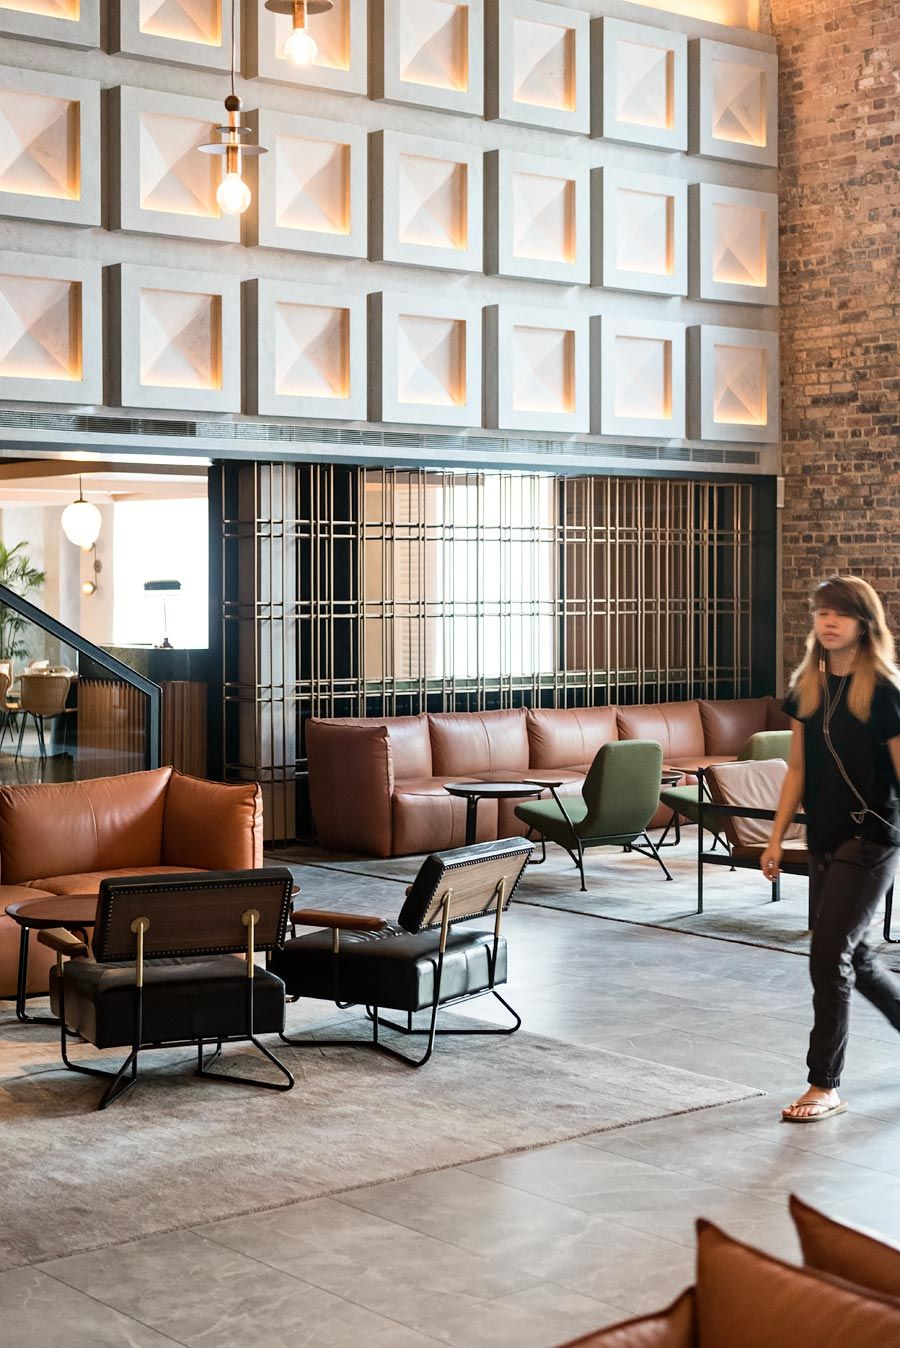 The Warehouse Hotel Review Industrial Chic In Singapore With